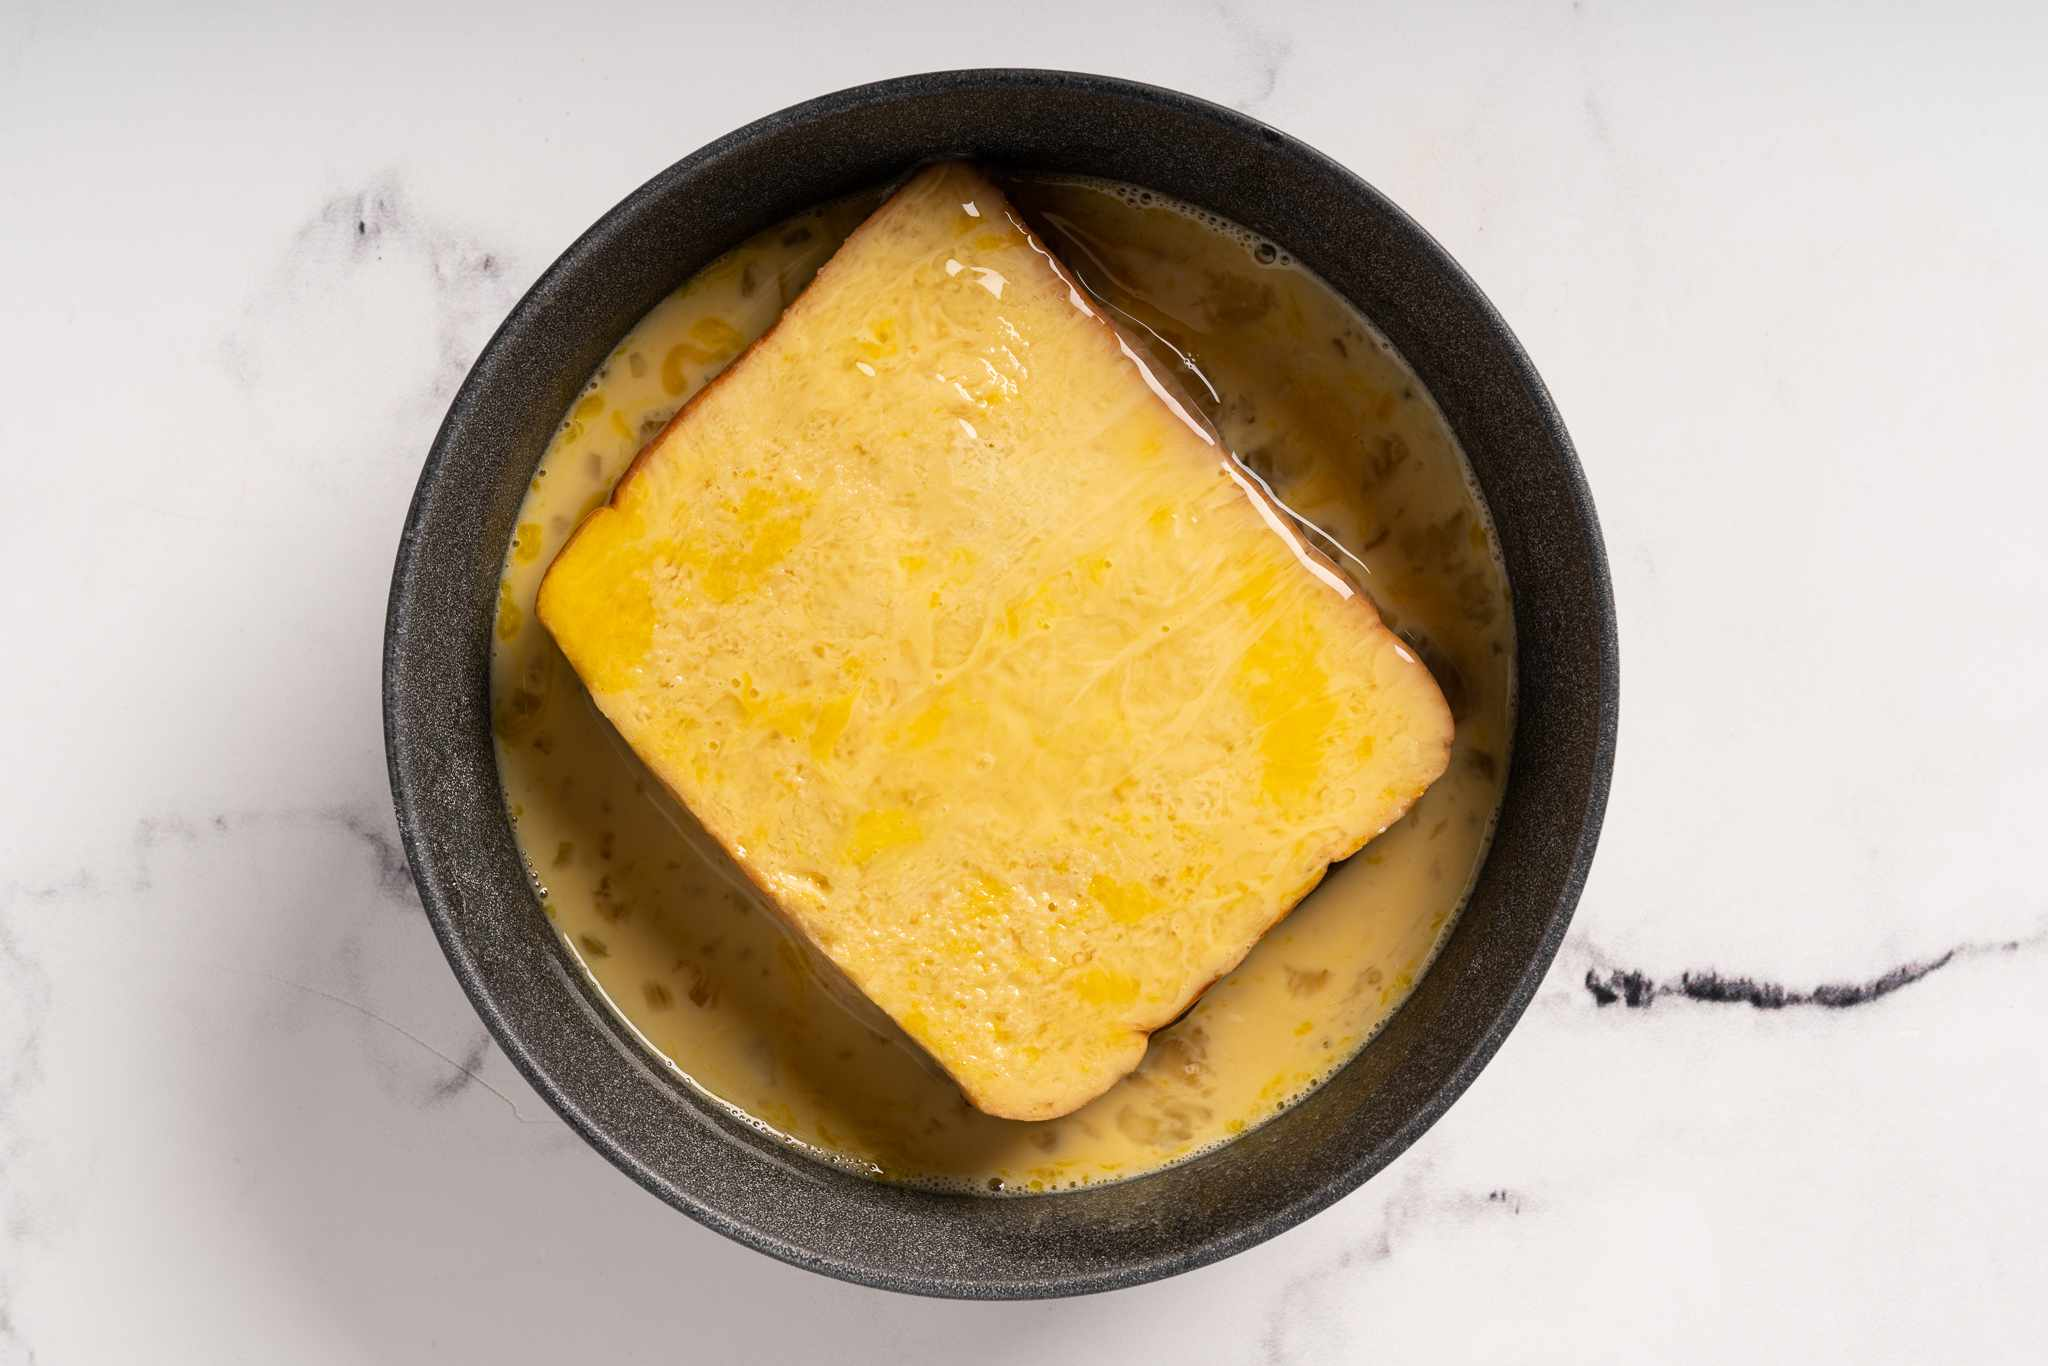 dip the bread into the egg mixture